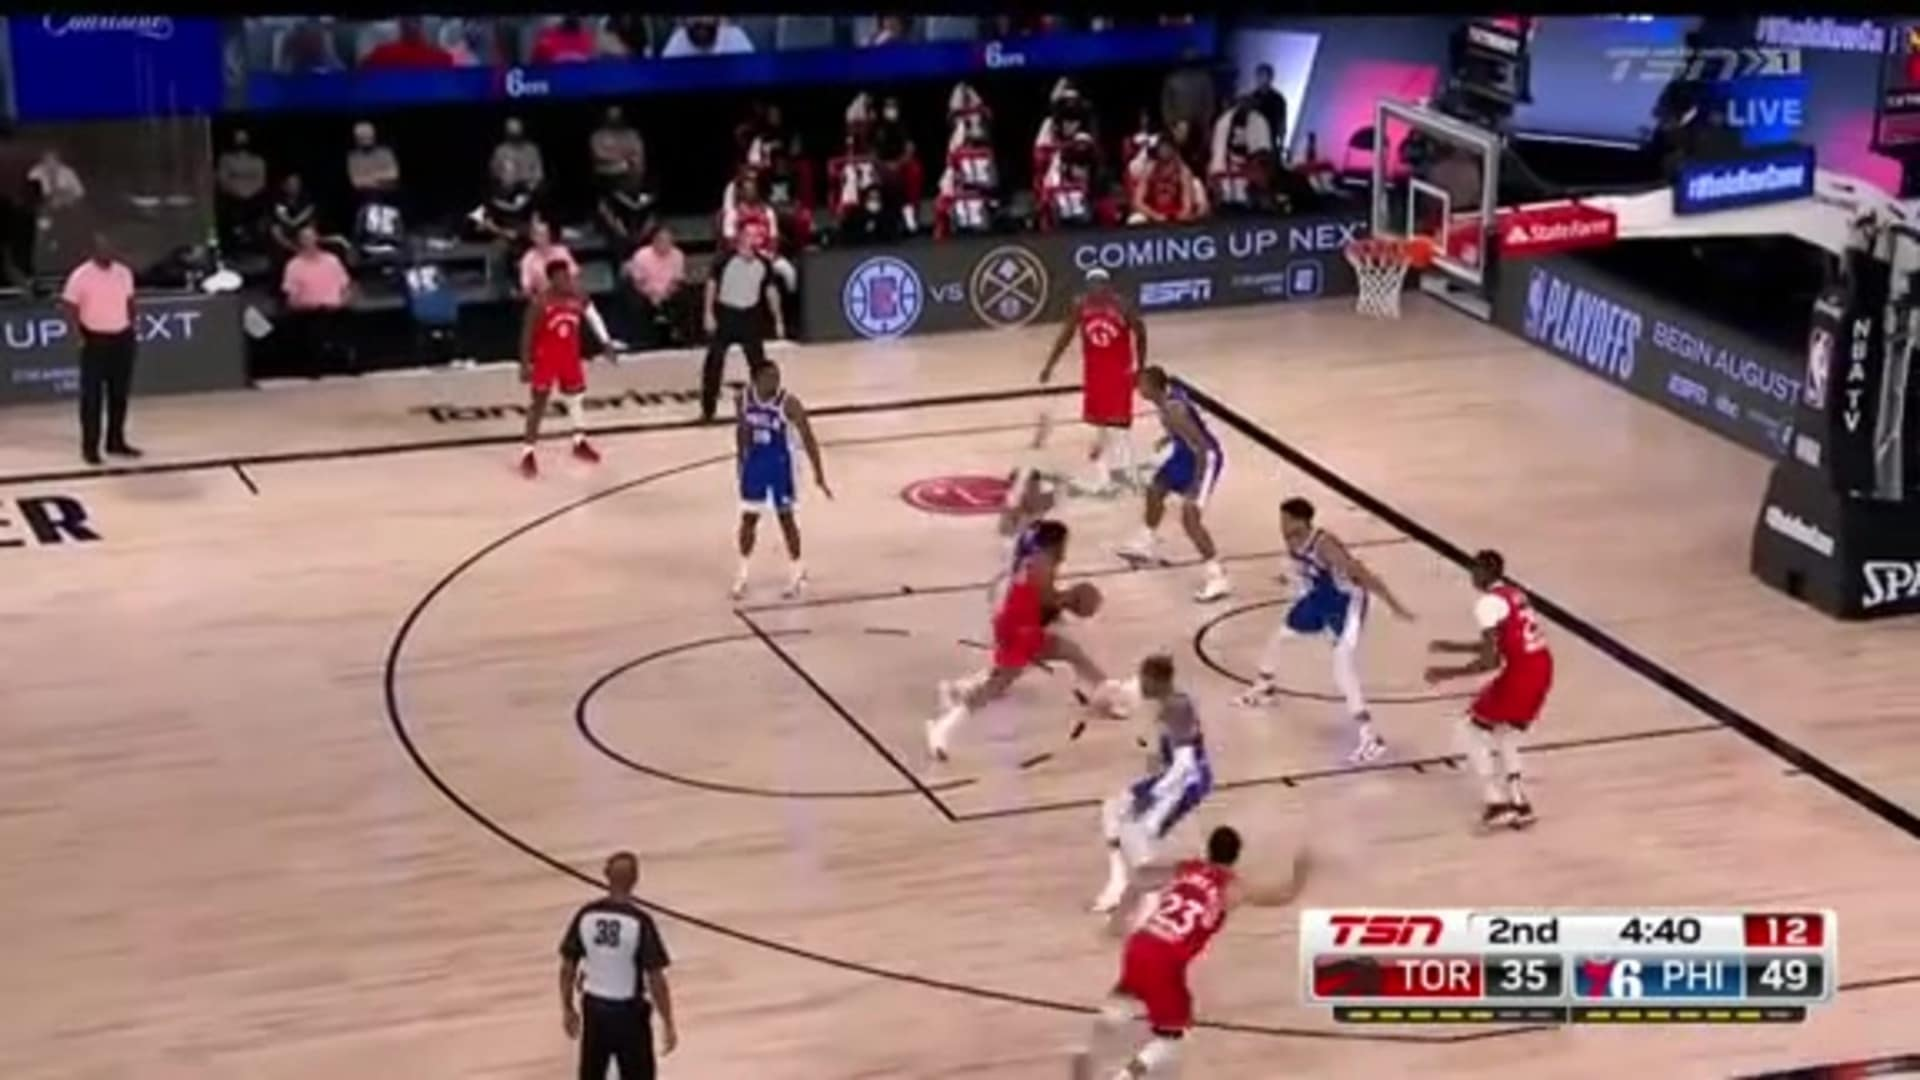 Raptors Highlights: Kyle Lowry Spin Move - August 12, 2020